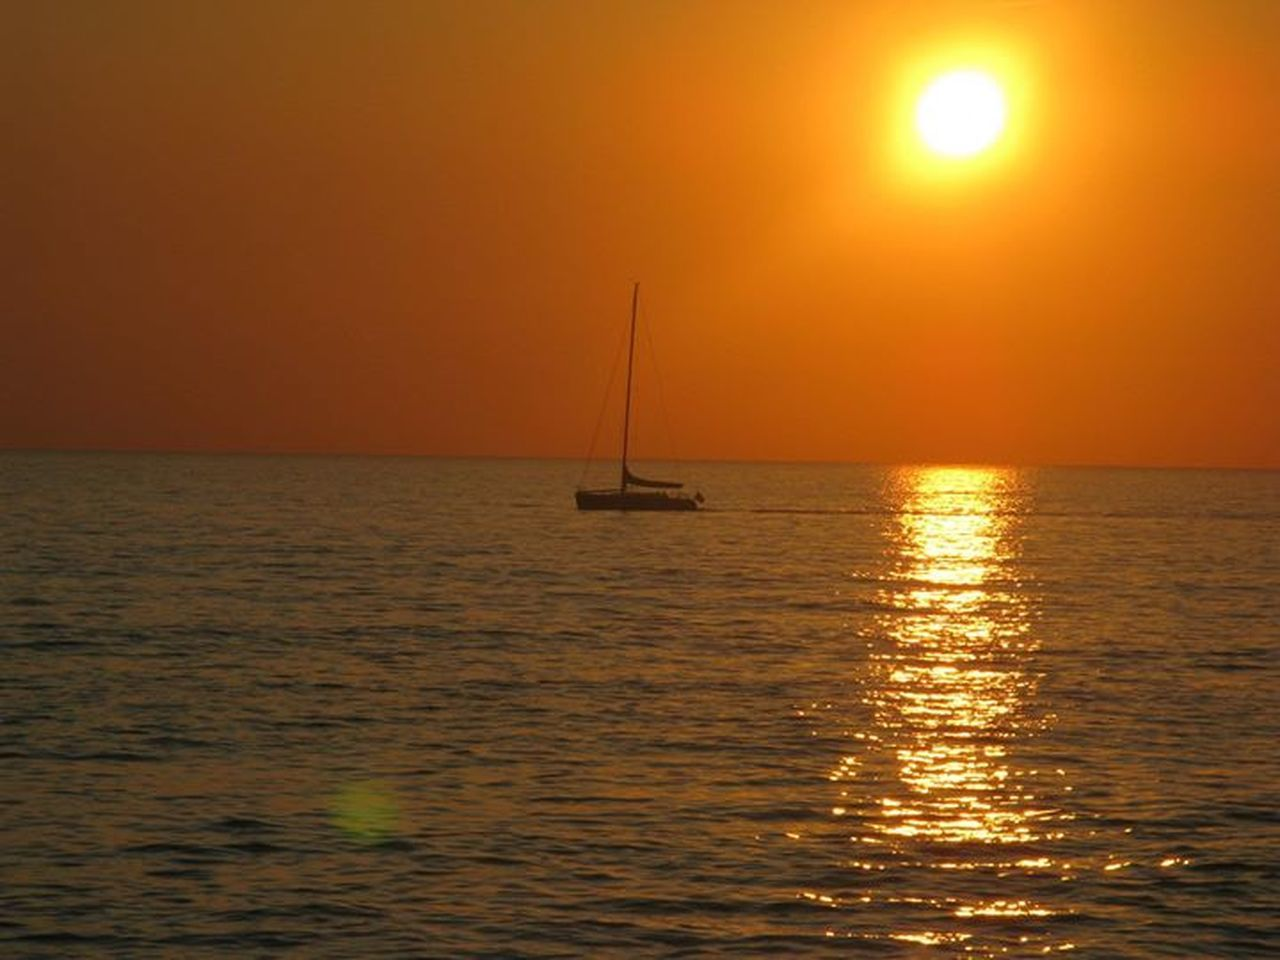 sea, sunset, sailboat, reflection, sun, horizon over water, water, scenics, tranquil scene, yacht, dramatic sky, nautical vessel, tranquility, idyllic, sailing, beauty in nature, vacations, sky, nature, sunlight, mast, sailing ship, no people, horizon, outdoors, travel destinations, beach, yachting, day